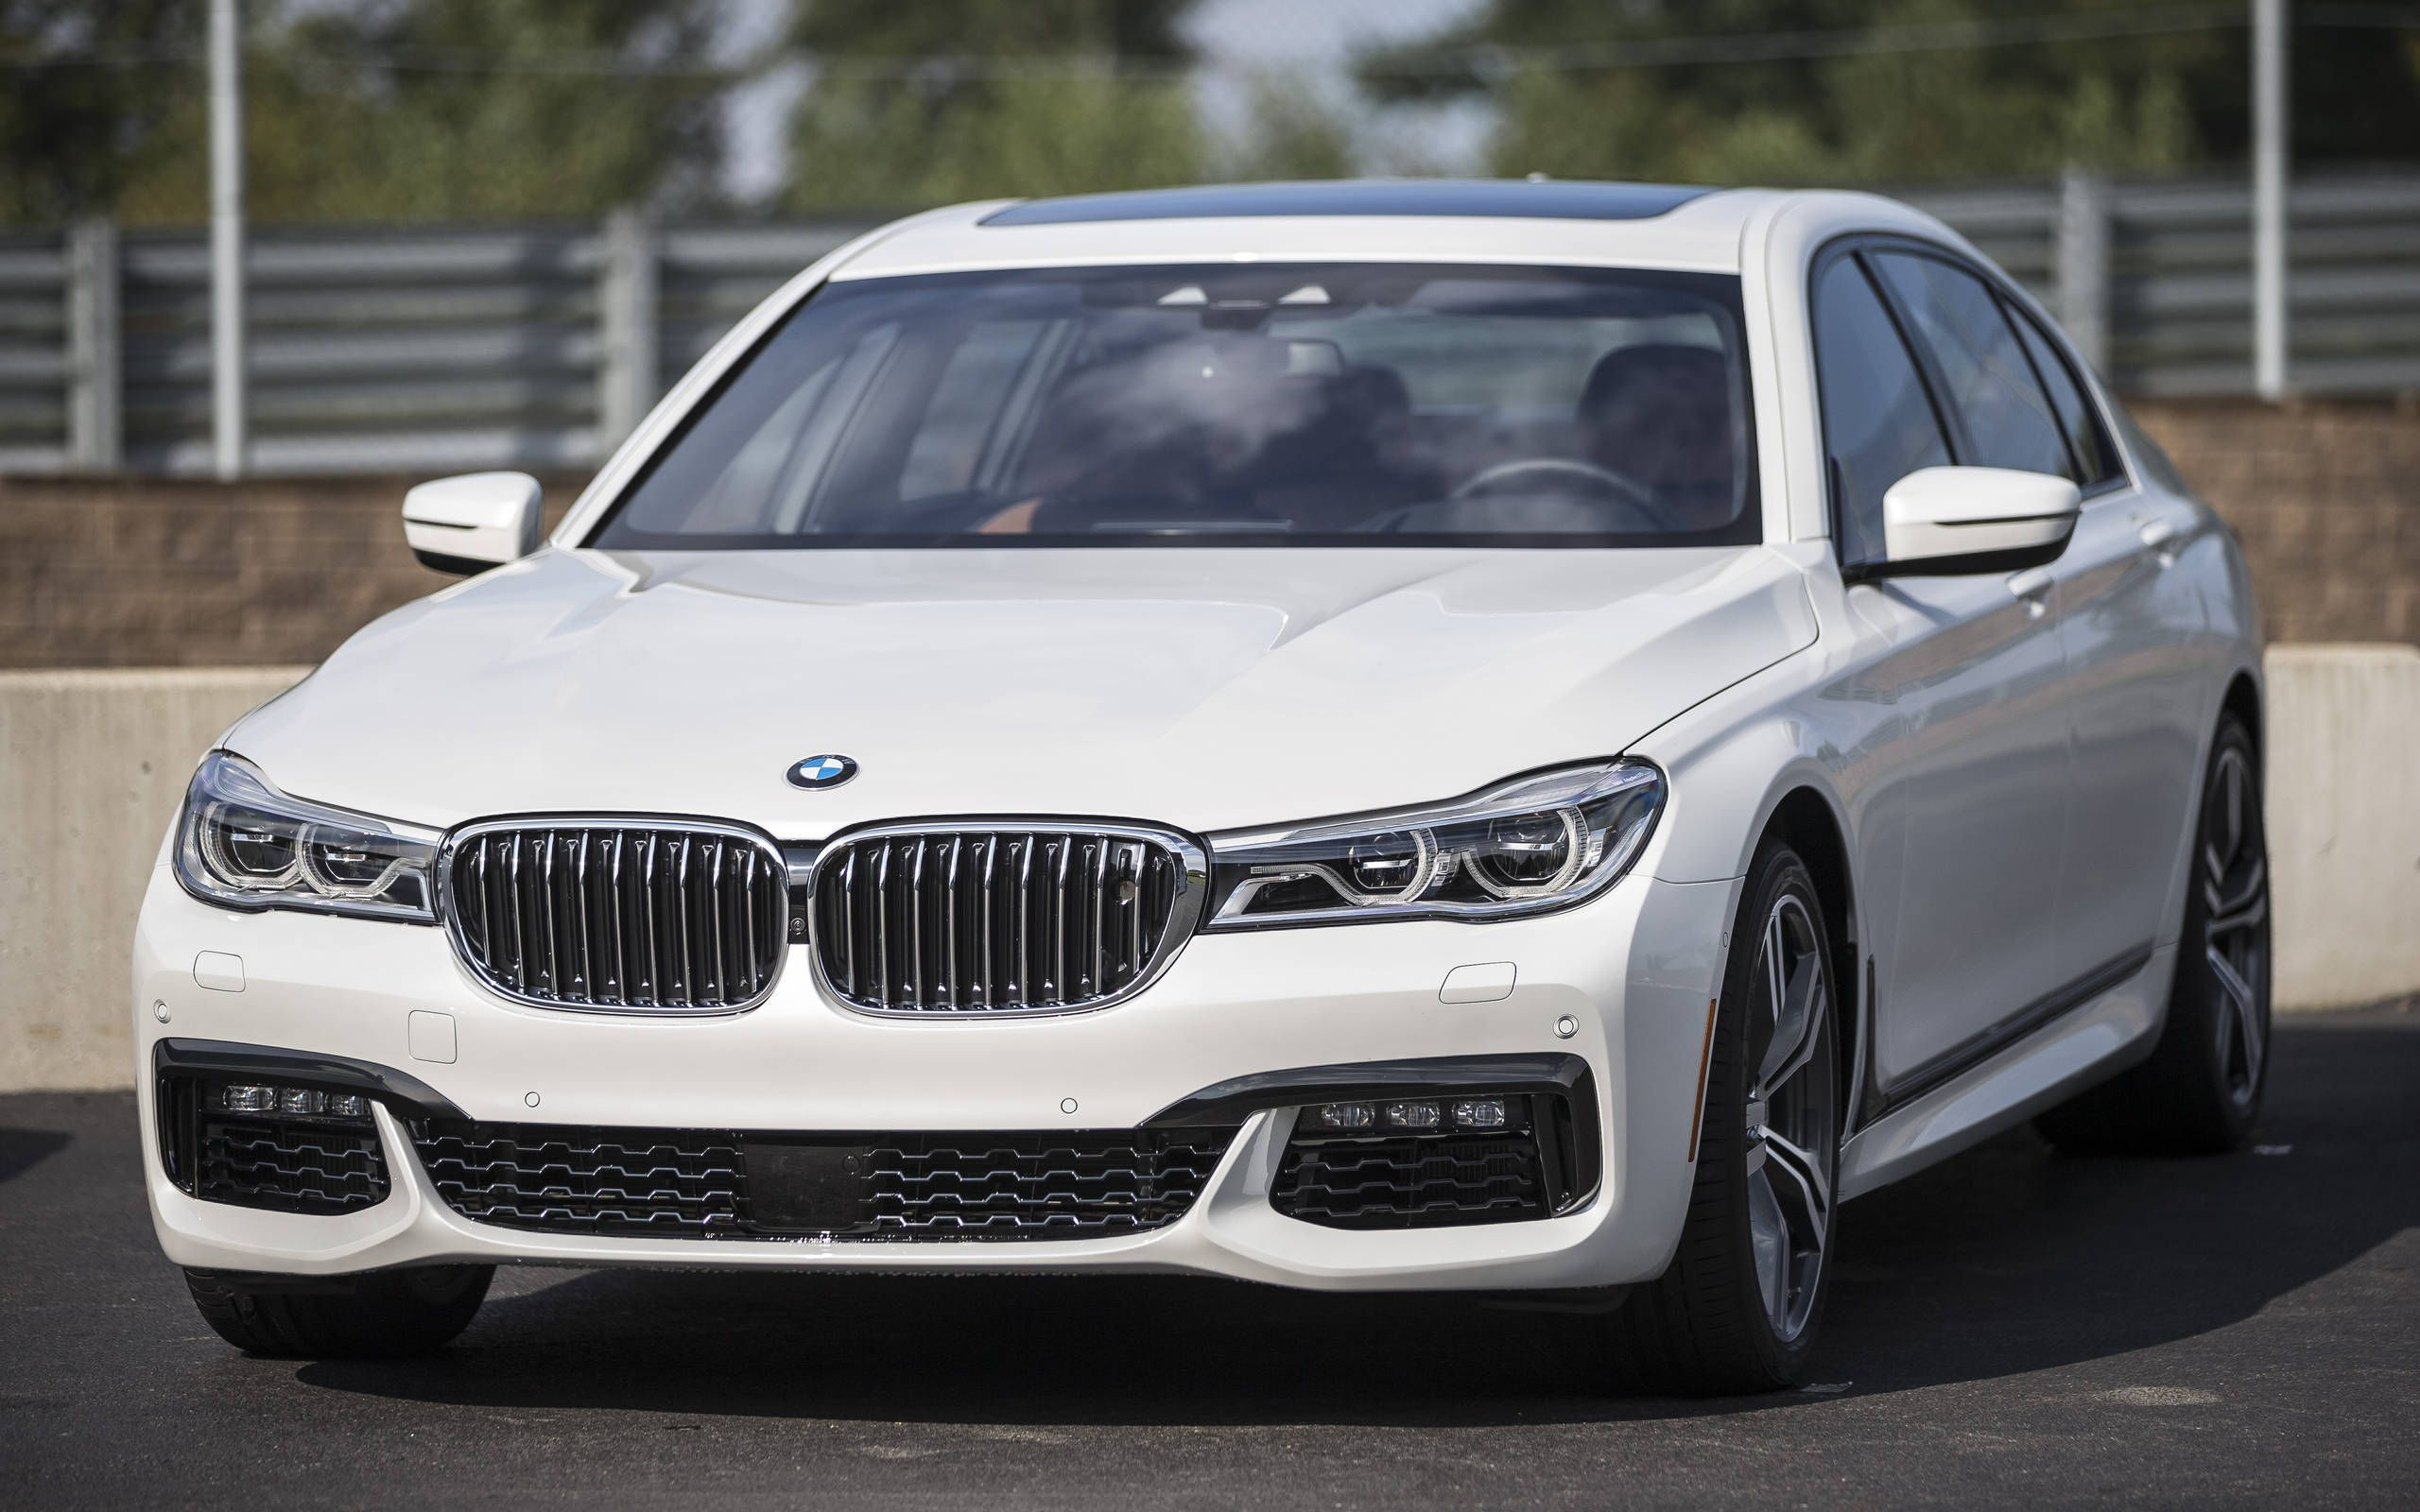 2016 Bmw 7 Series First Drive Bavaria Goes After The S Class